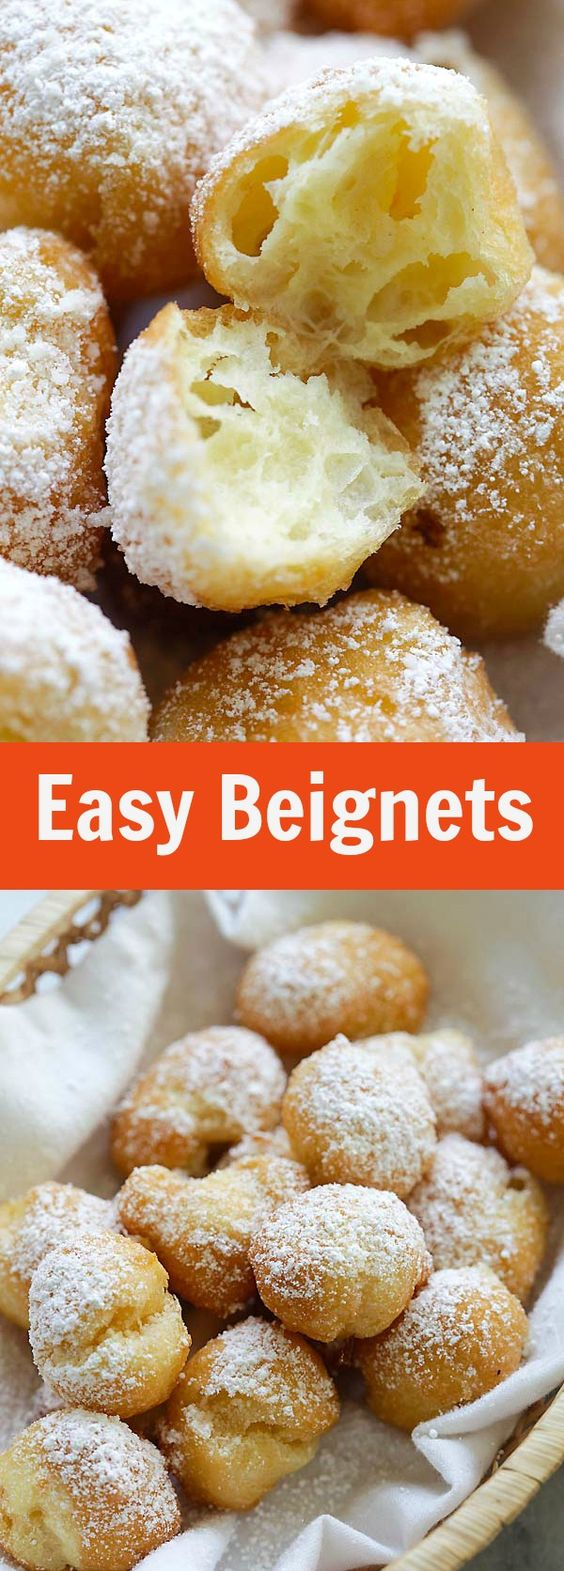 Easy Beignets – Homemade beignets have never been so easy and delicious! This easy beignet recipe is fail-proof and so good you can't stop eating   rasamalaysia.com